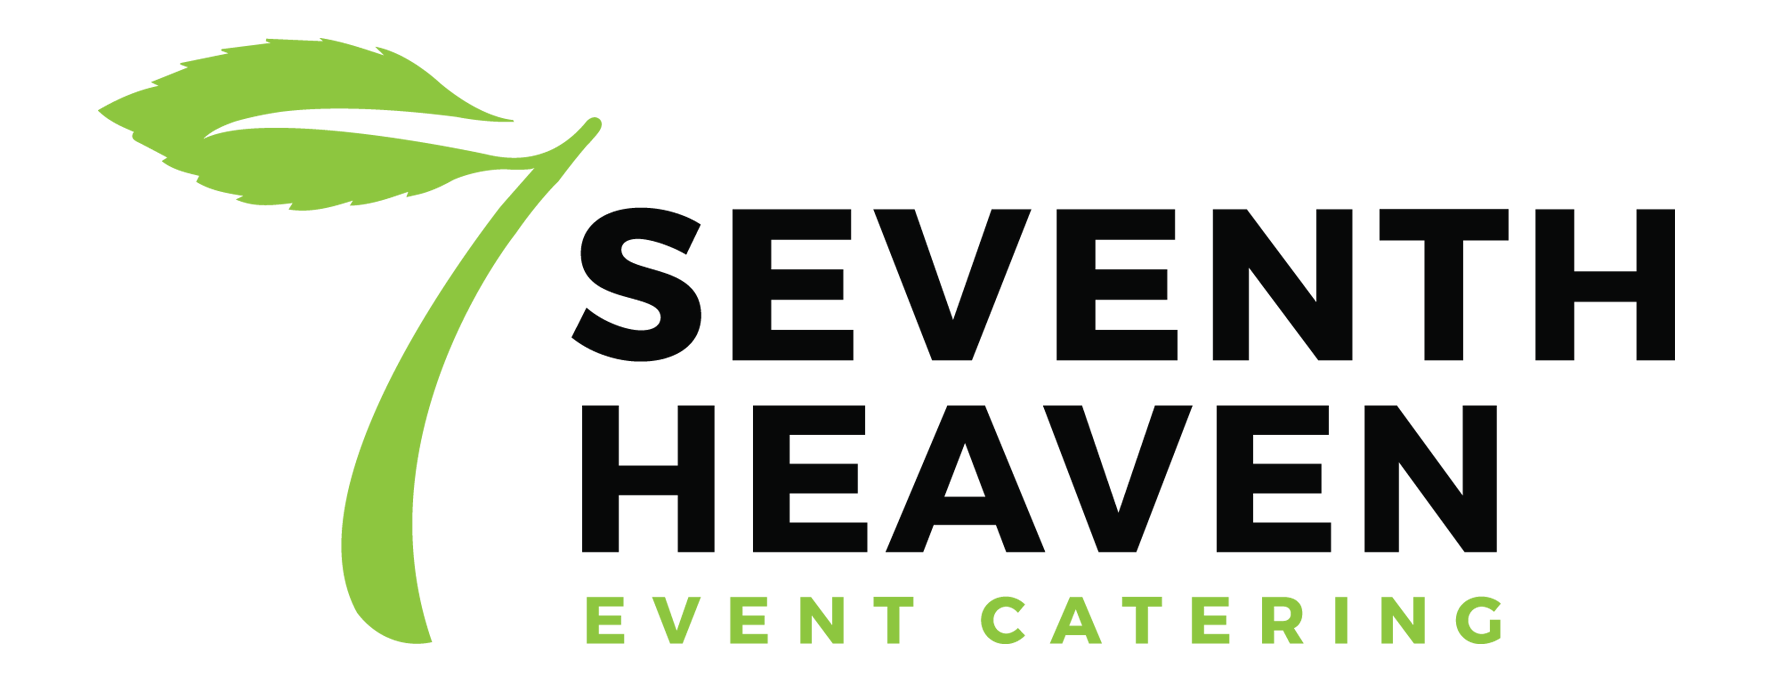 Seventh_Heaven_Logo_black_text_no_bg.png